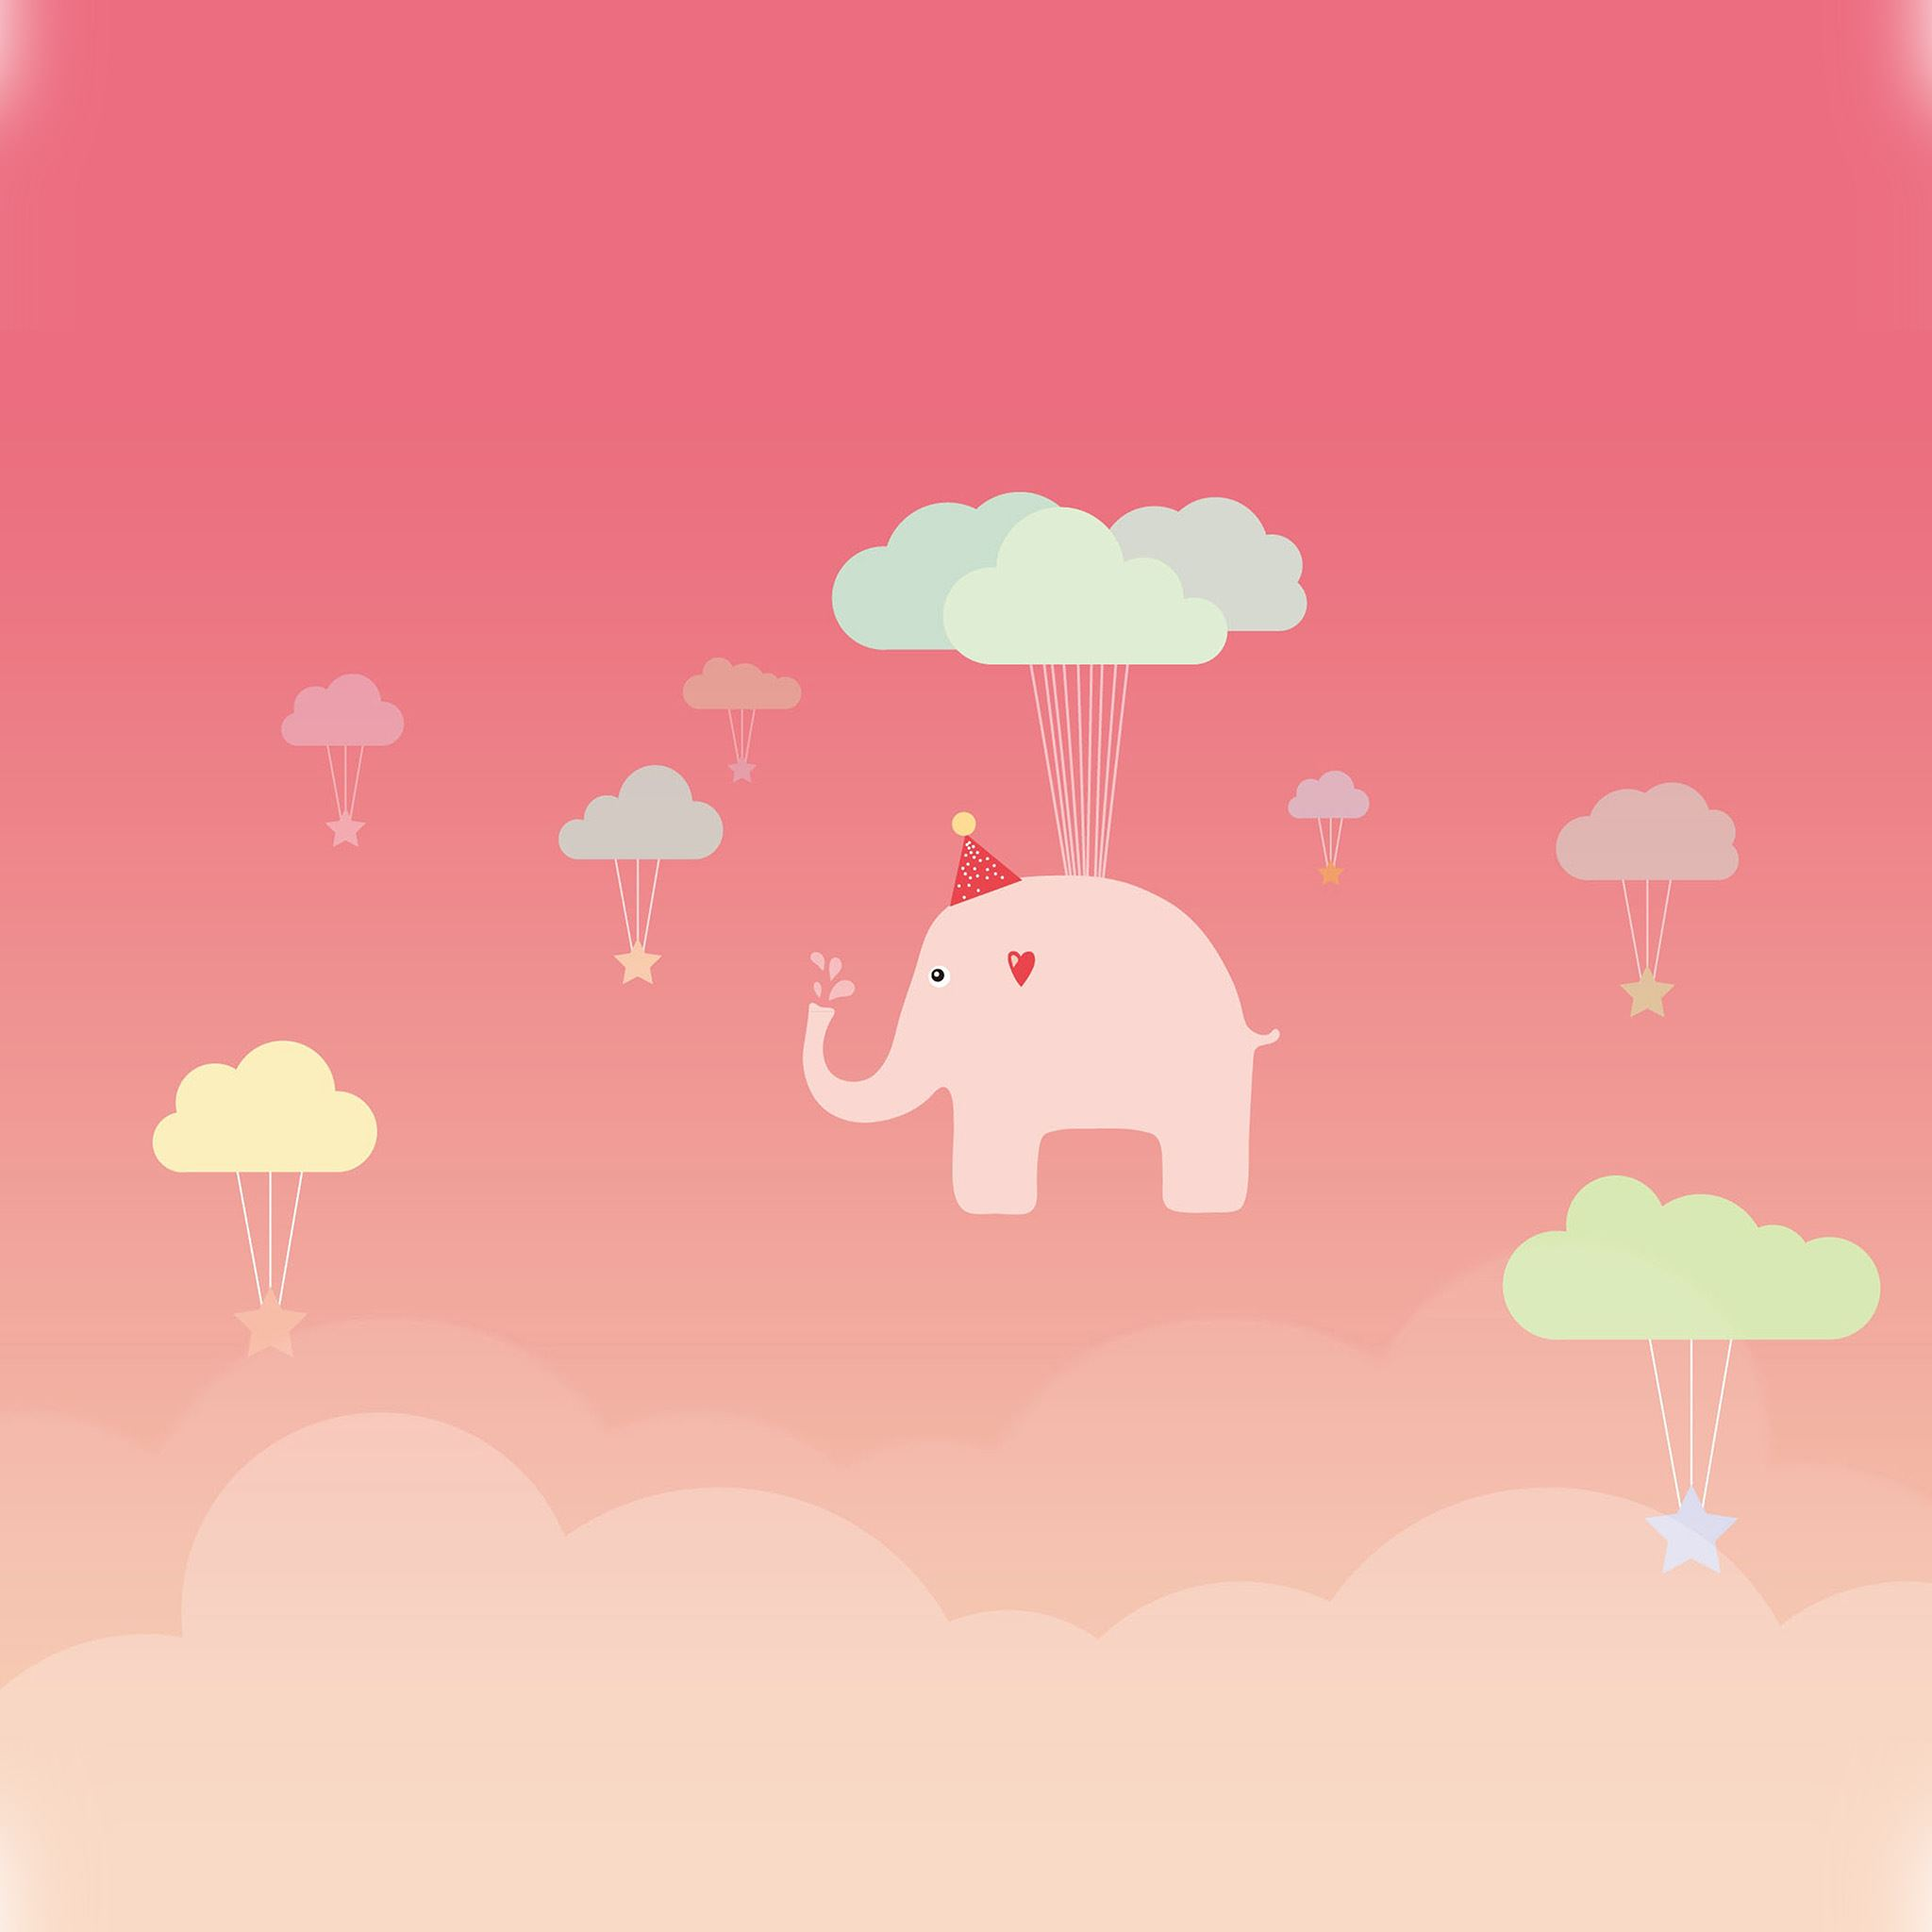 Cute Elephant Illustration Art Pink Fly iPad Air wallpaper